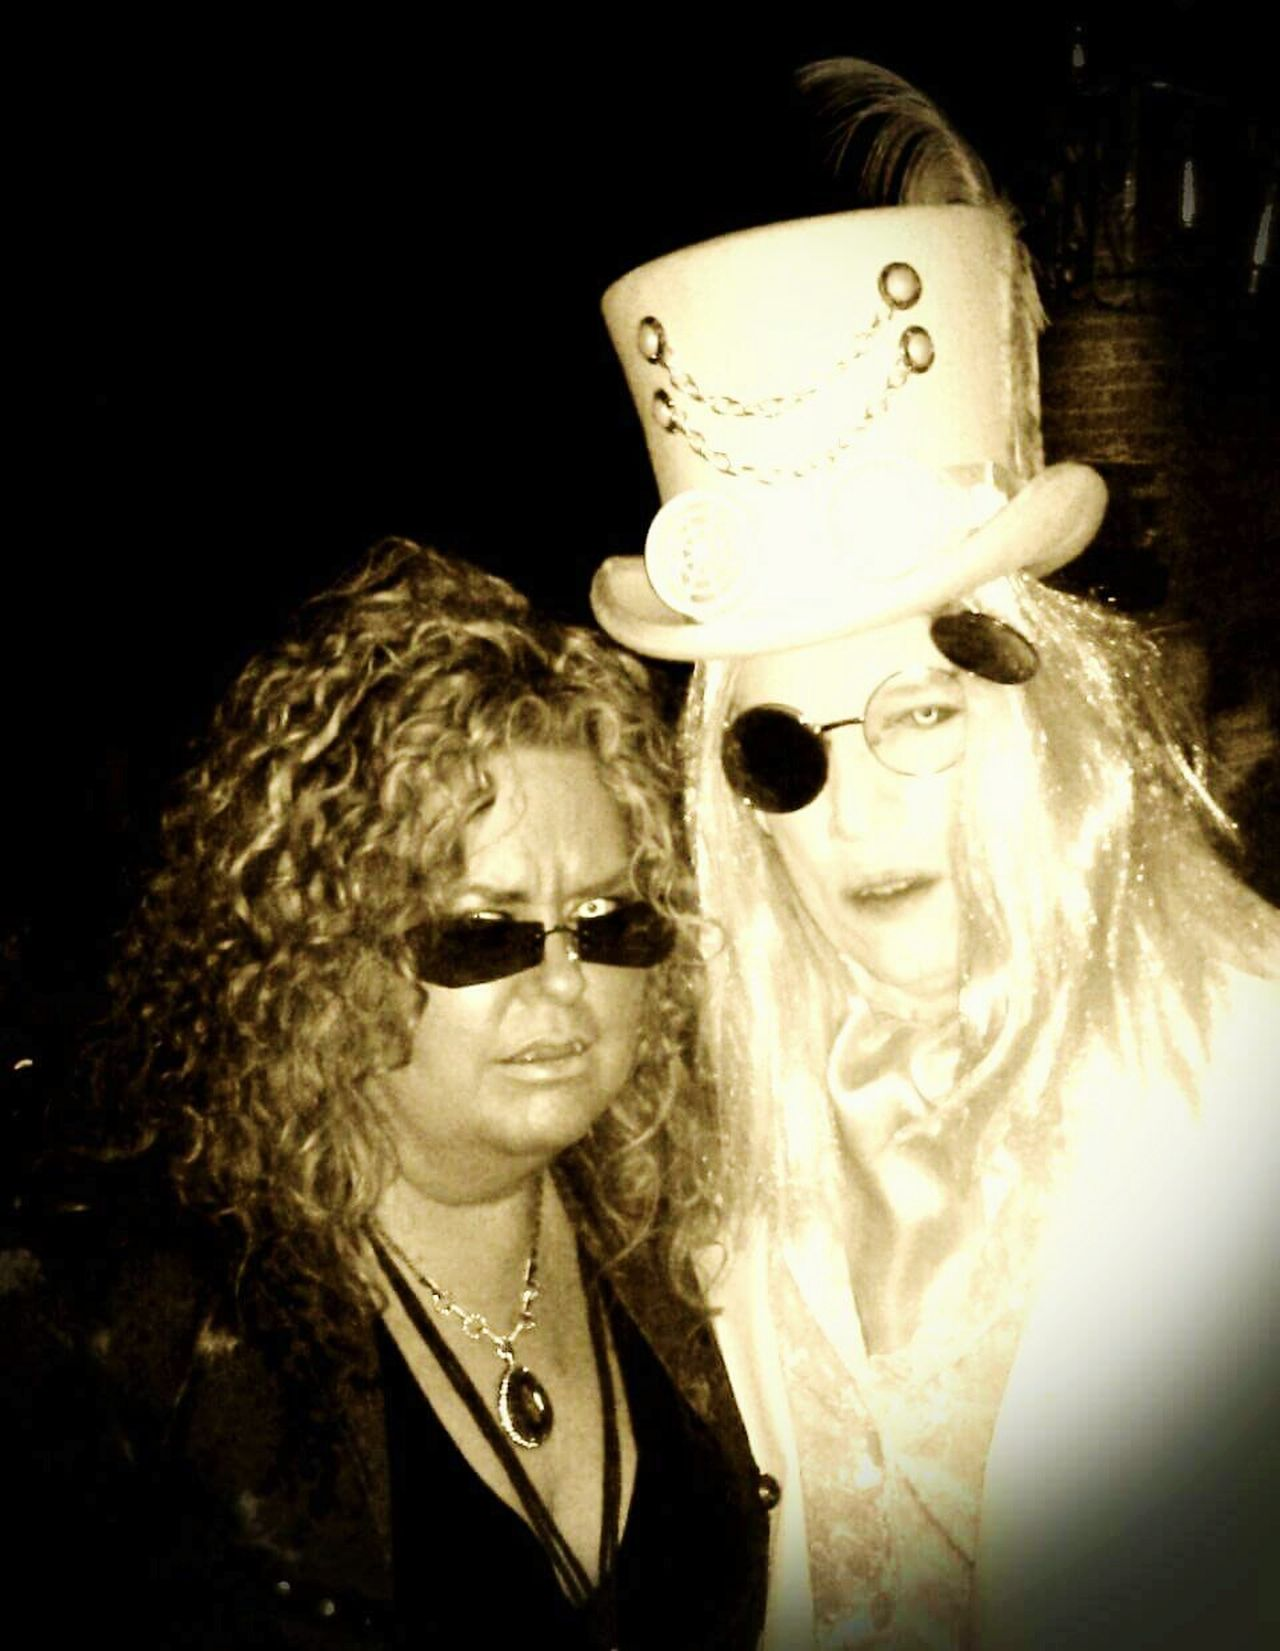 Halloween Black & White Eclectic Couple My Friends Halloween_Collection Light And Dark Opposites Attract Spectacle Lifestyles Dark Fairytale